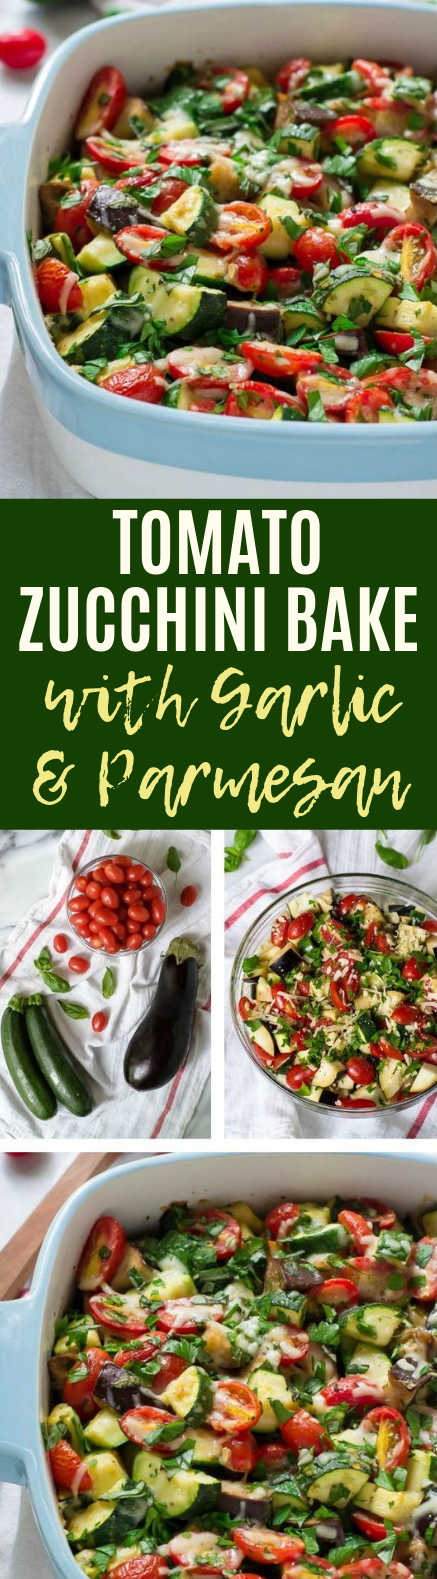 Tomato Eggplant Zucchini Bake with Garlic and Parmesan #vegan #plantbased